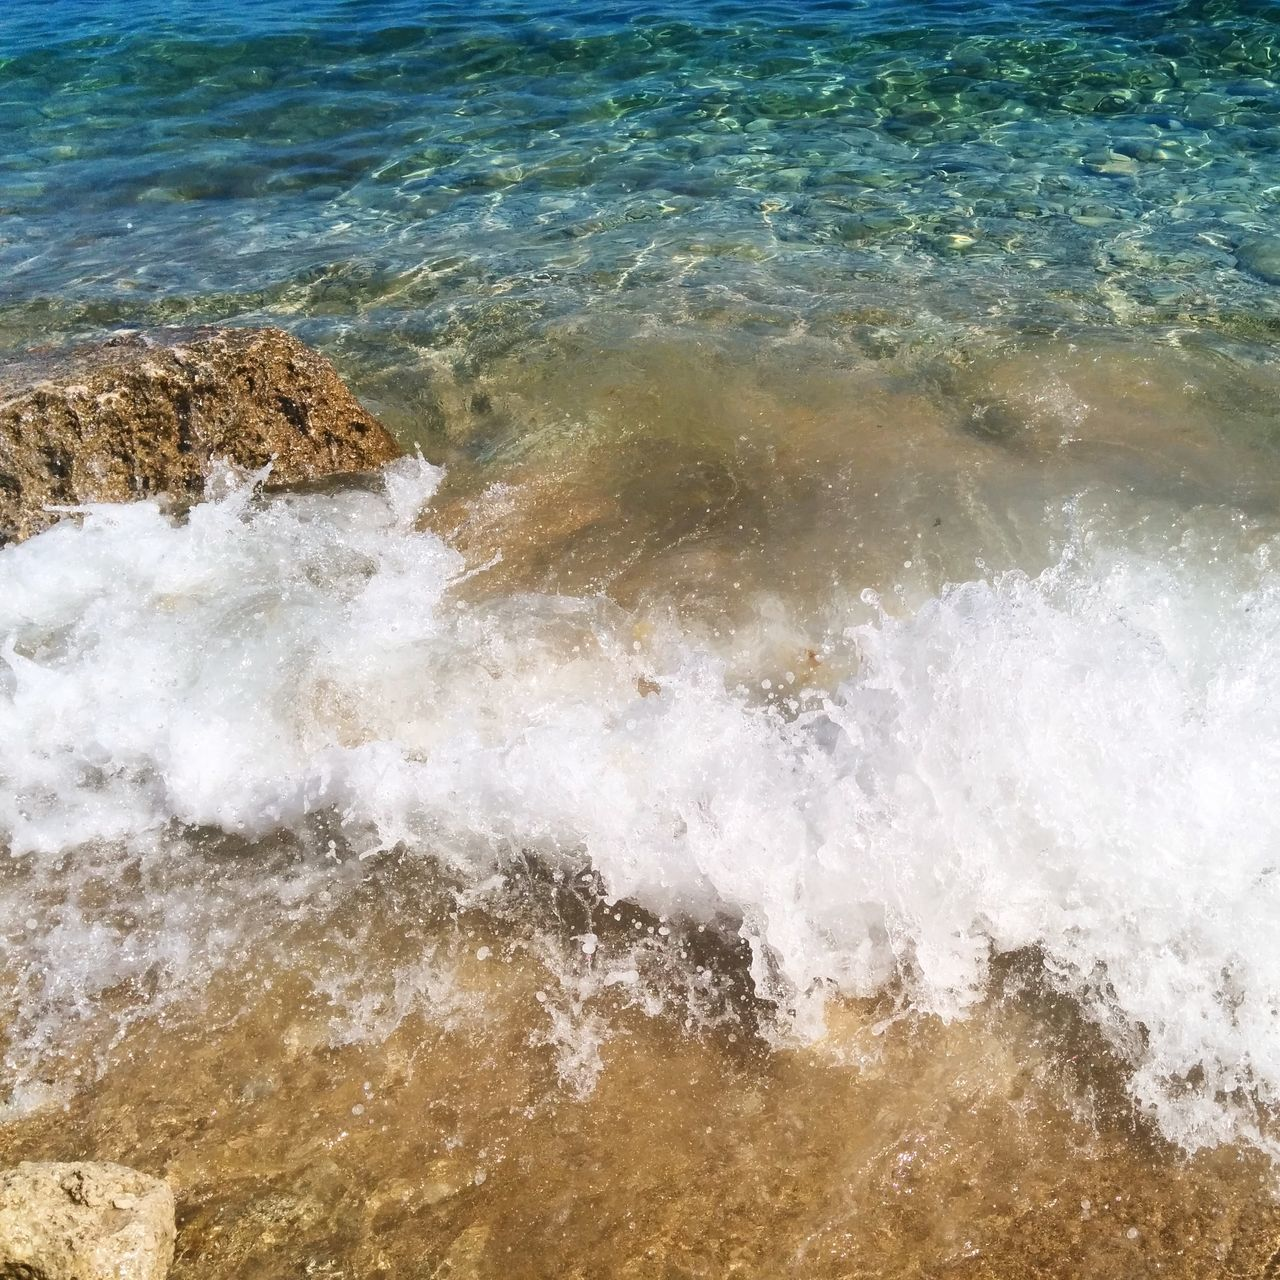 water, nature, no people, sea, wave, motion, high angle view, beauty in nature, rock - object, outdoors, day, waterfront, power in nature